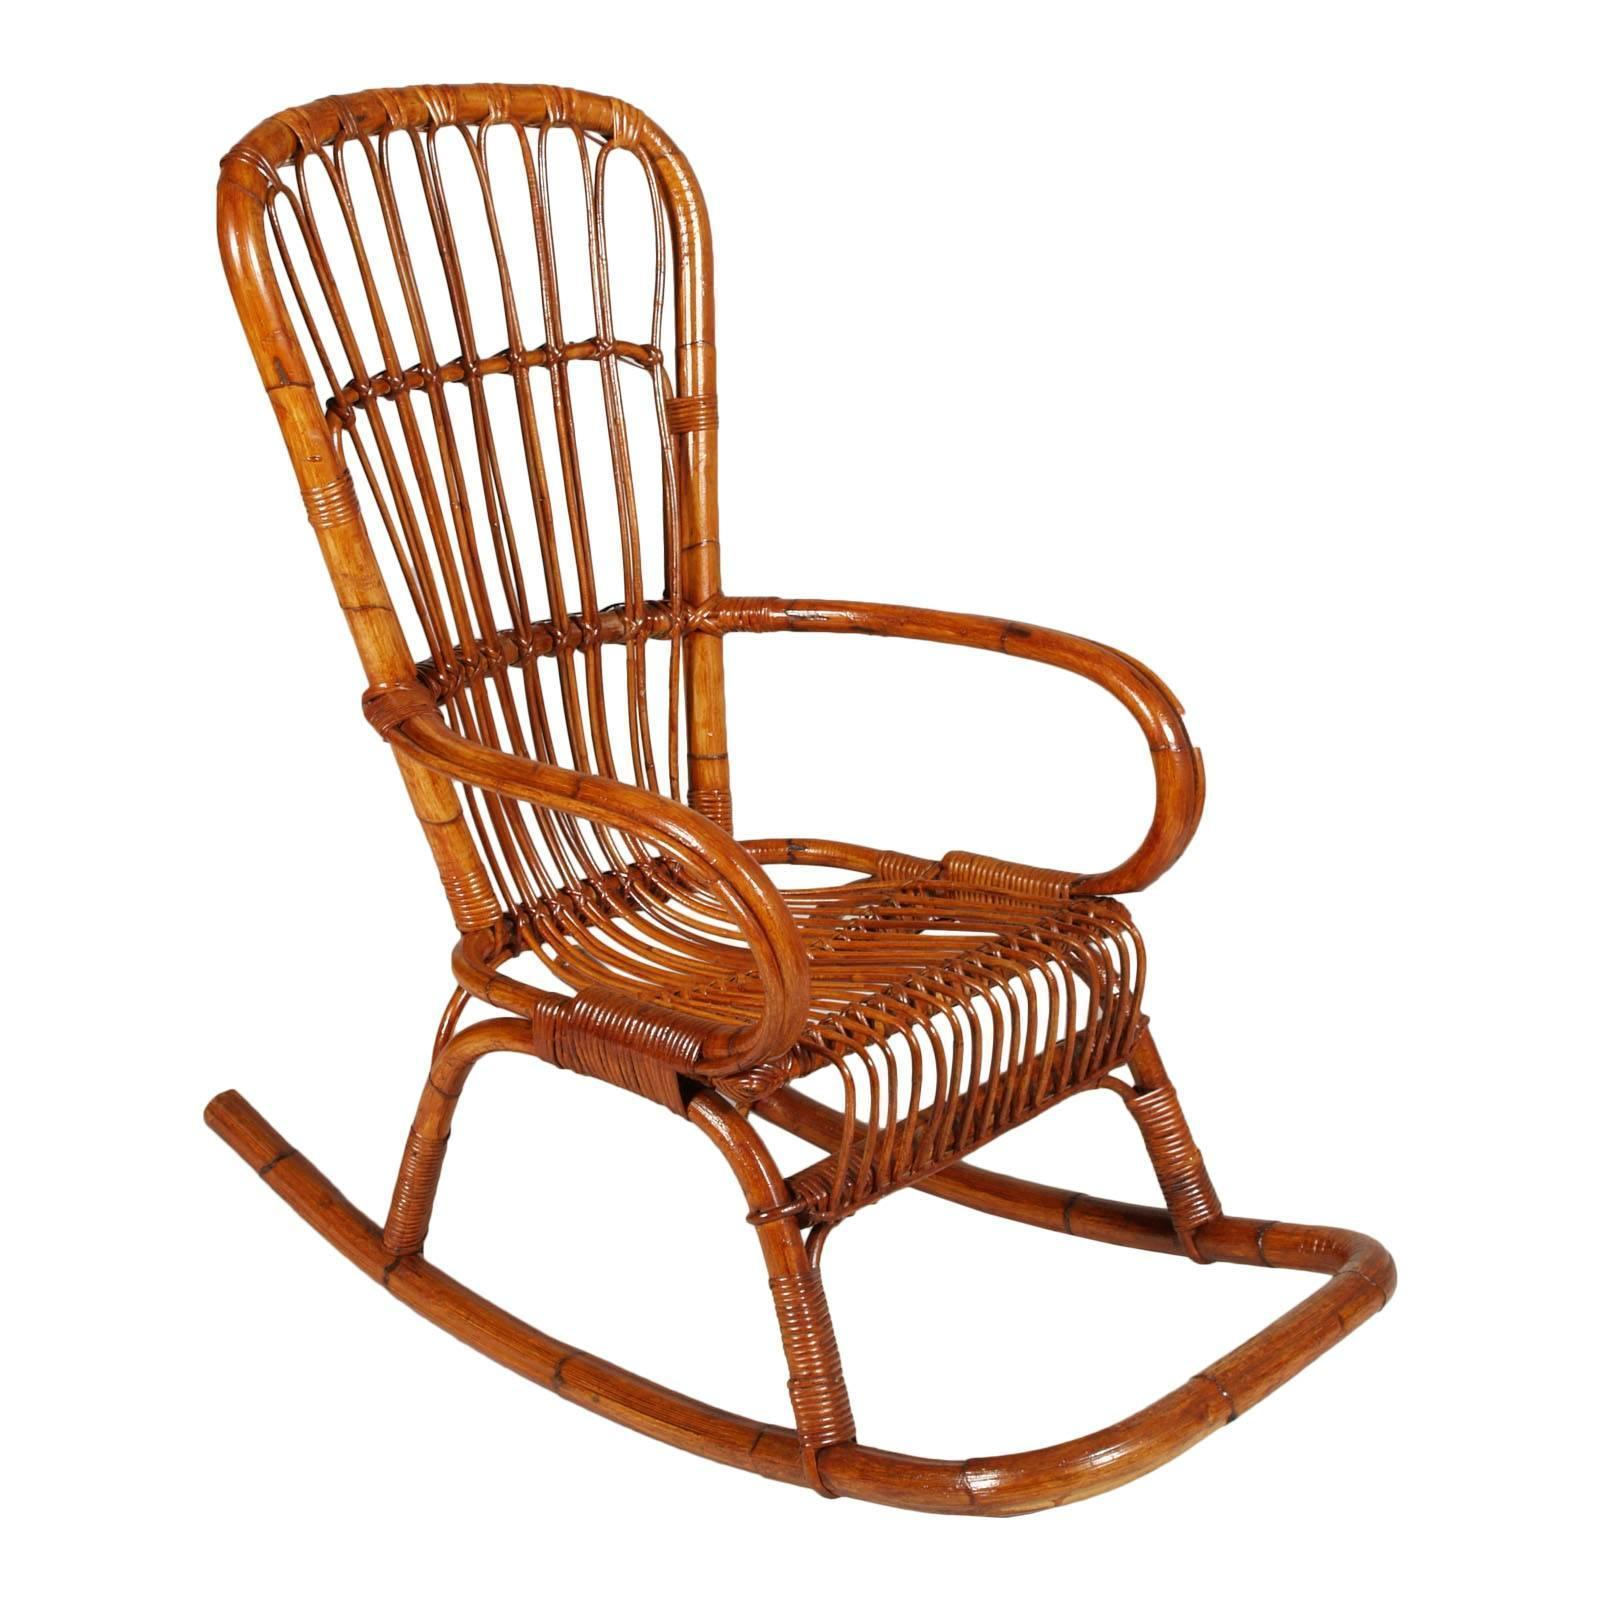 Super Italian Mid Century Modern Bamboo Rocking Chair Attributable Vittorio Bonacina Gmtry Best Dining Table And Chair Ideas Images Gmtryco